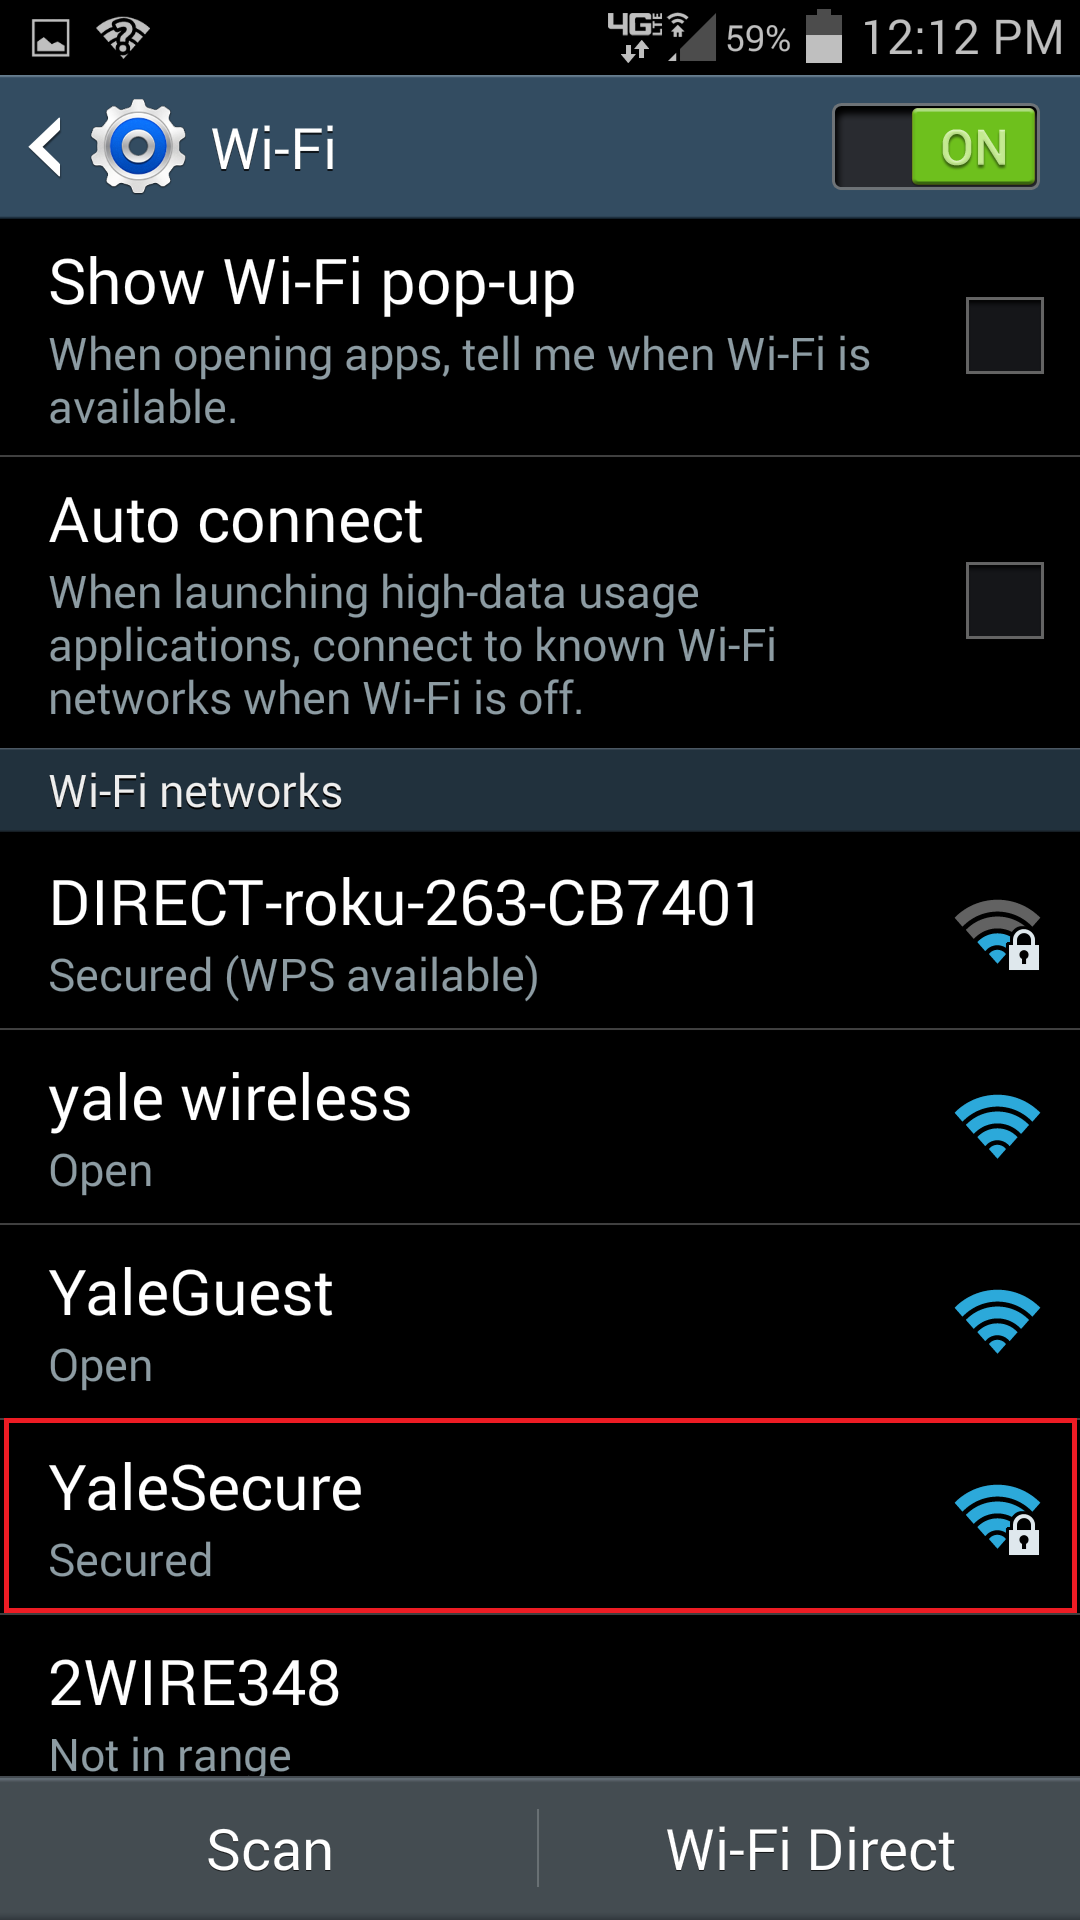 Connecting Samsung Galaxy to Yale Secure wifi - SOM IT